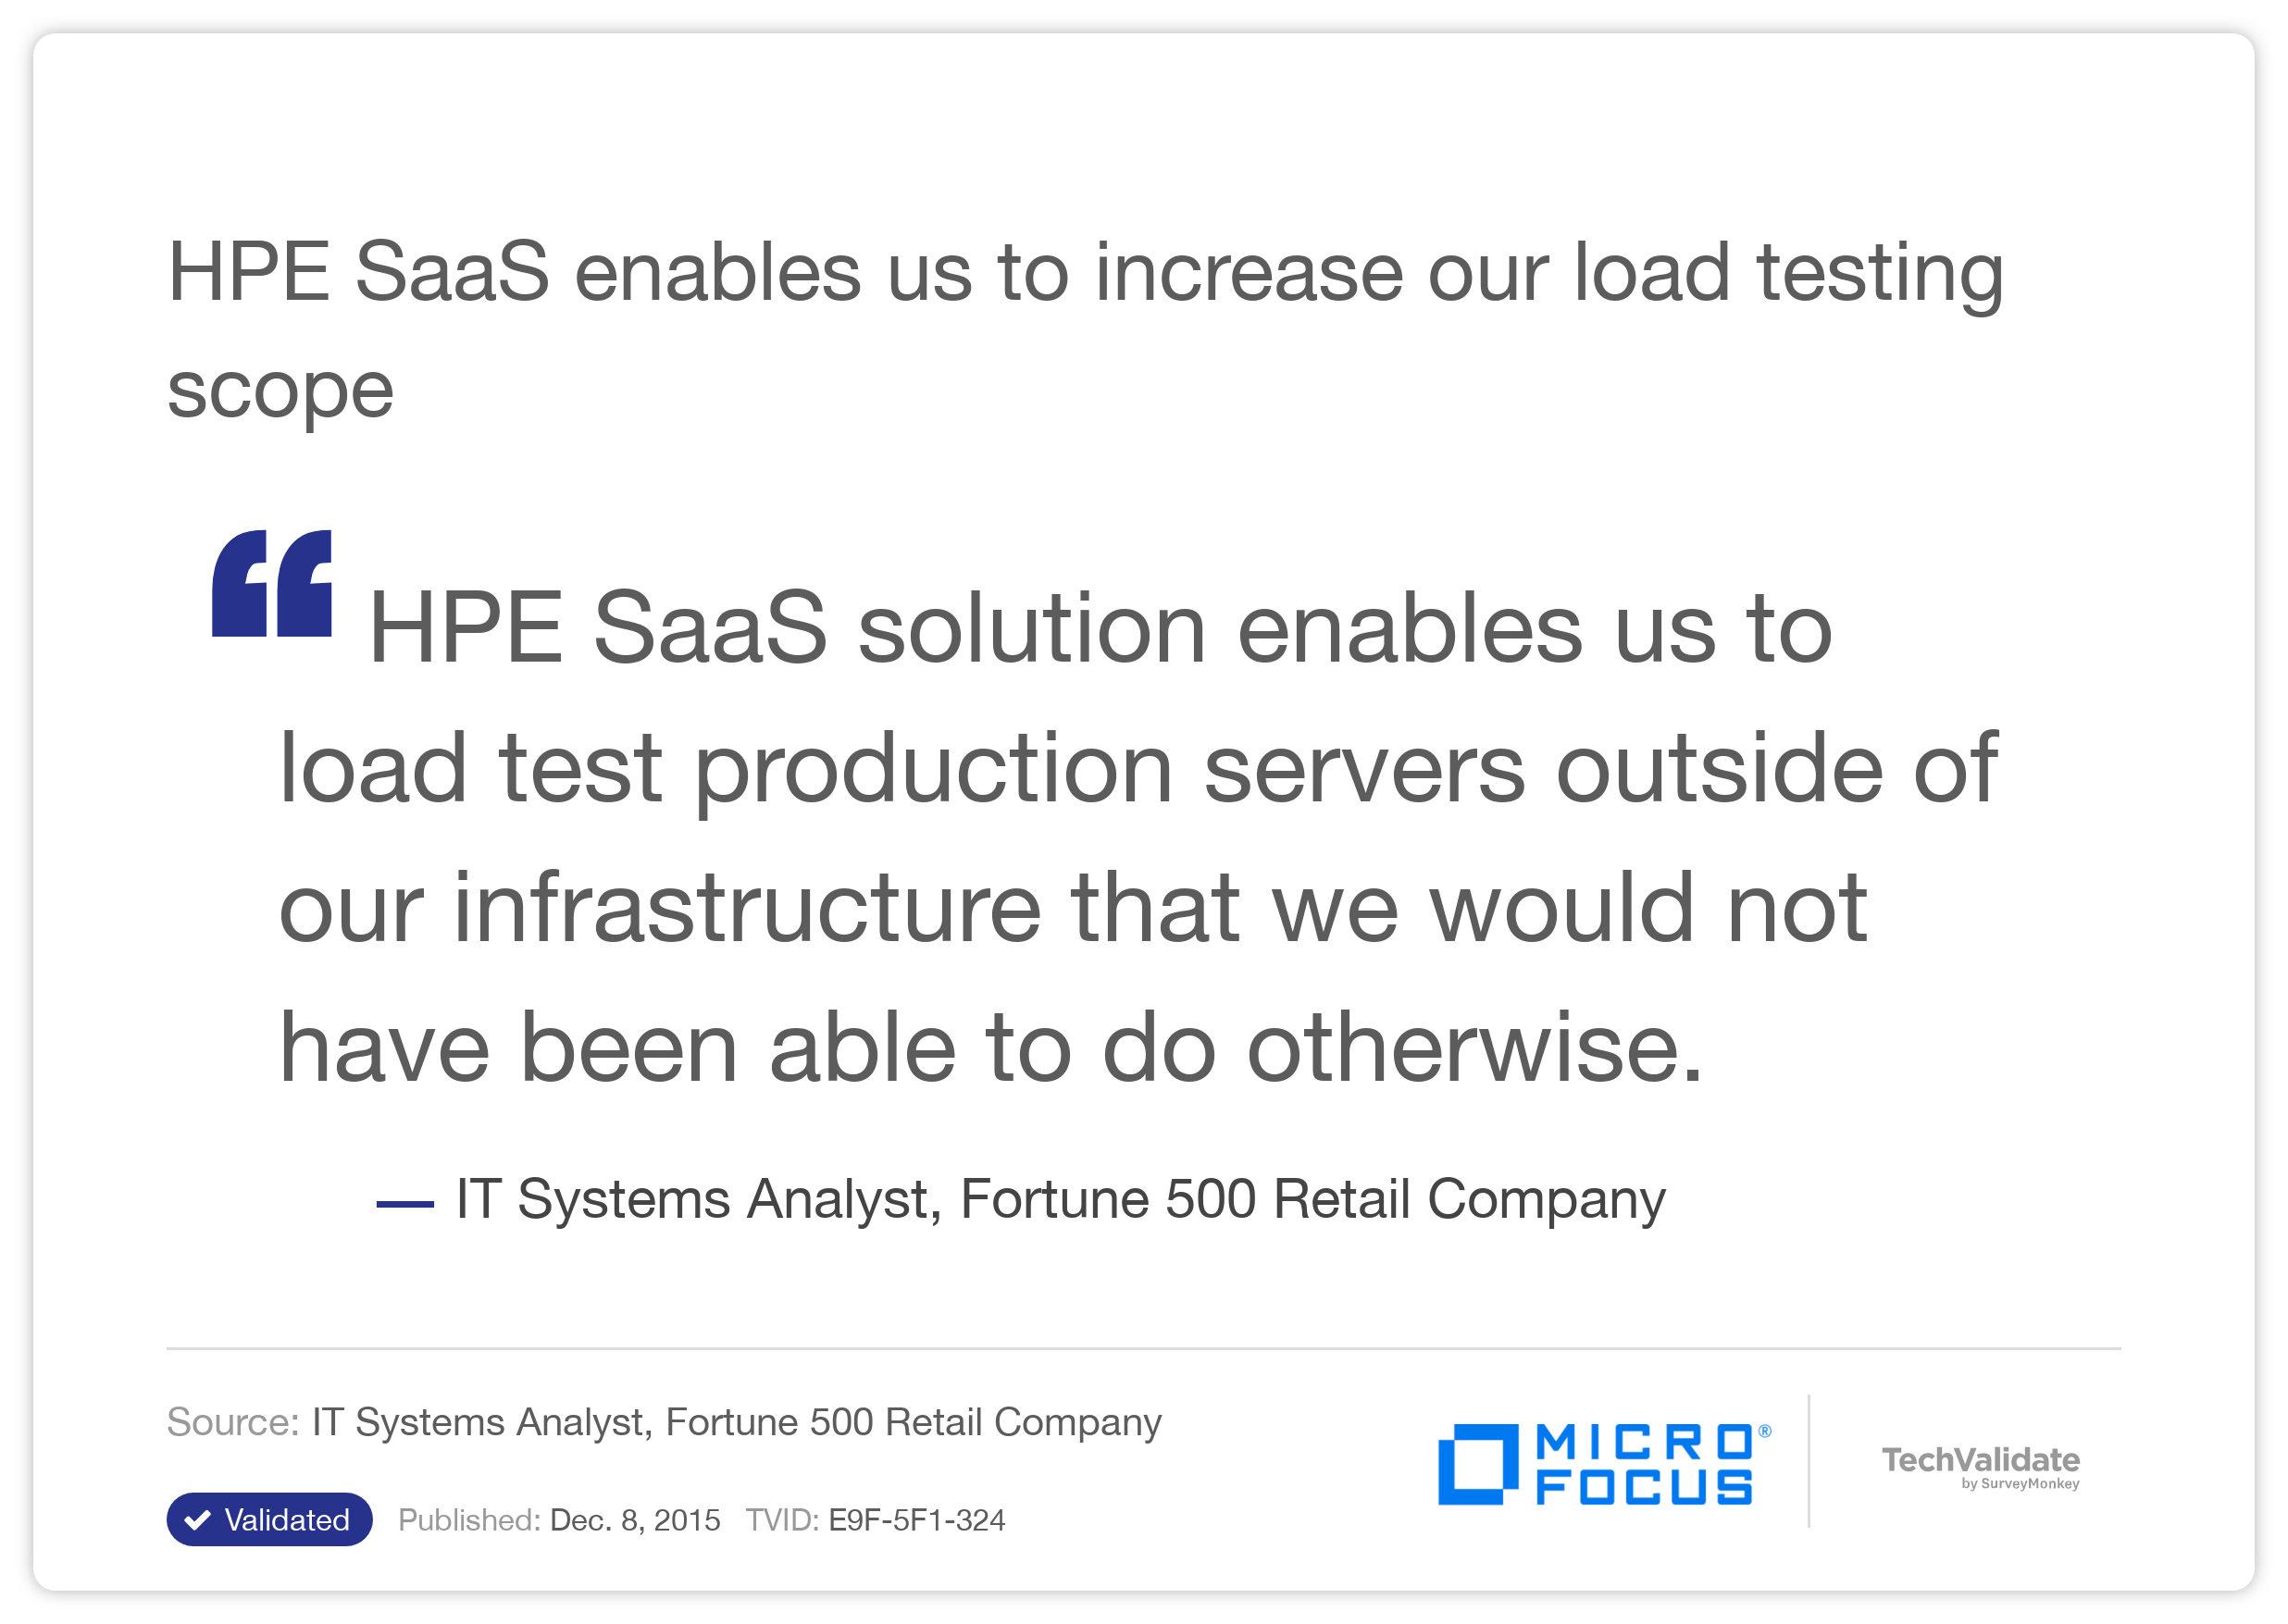 HPE SaaS enables us to increase our load testing scope